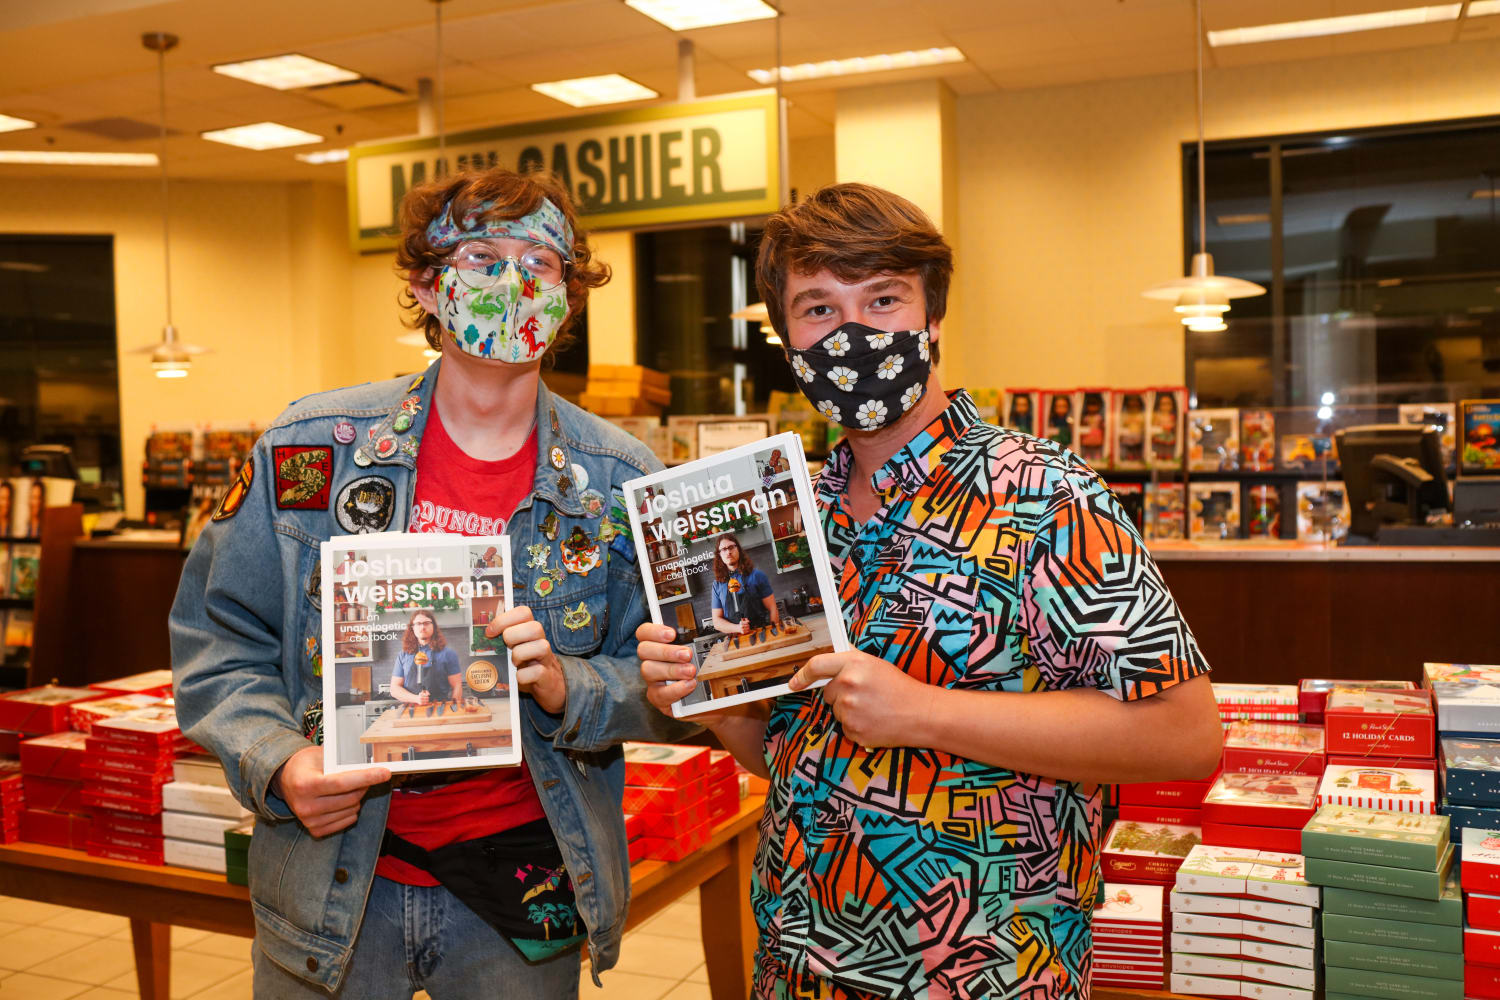 Joshua Weissman book tour at Barnes and Noble The Grove, Los Angeles, 2021.